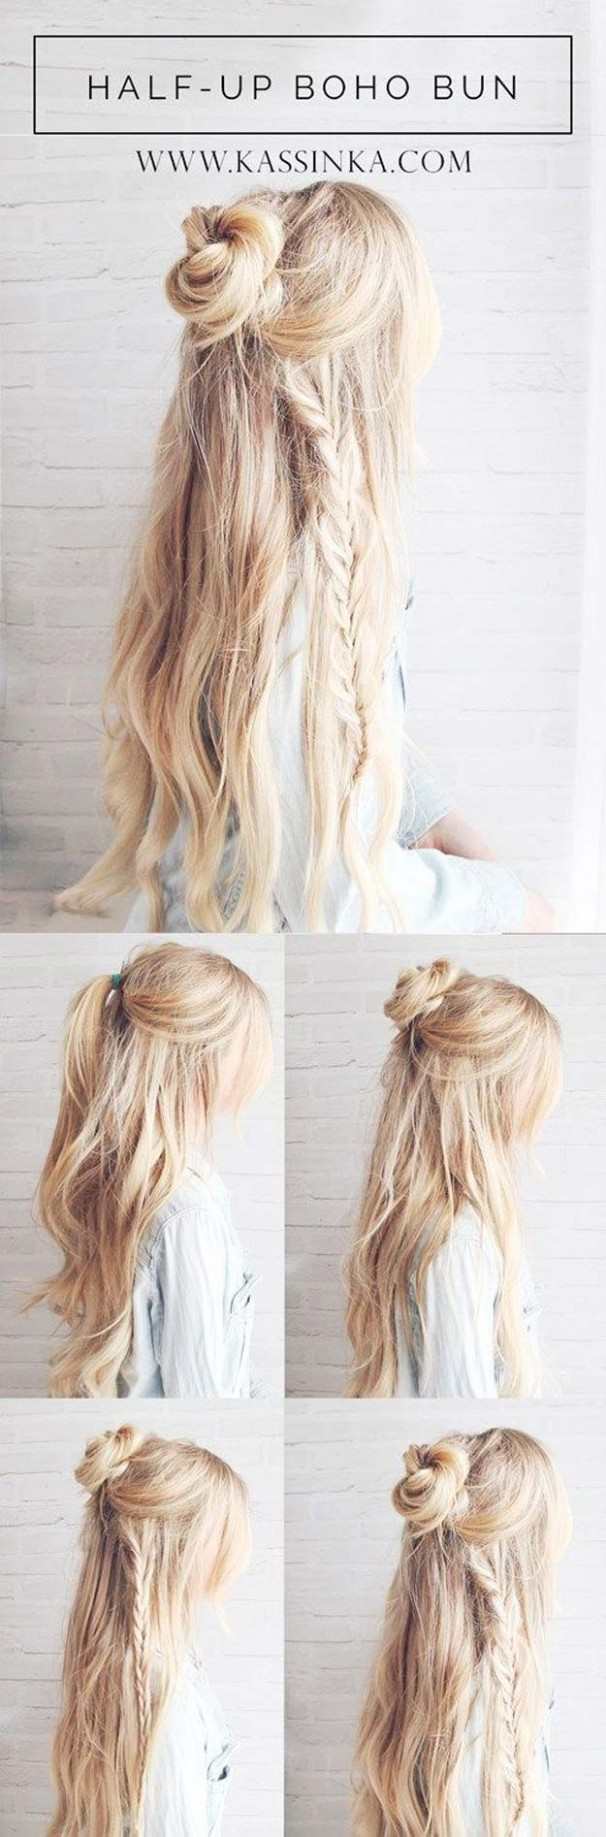 10 Best Hairstyles For Long Hair DIY Projects For Teens Hairstyles For Long Hair